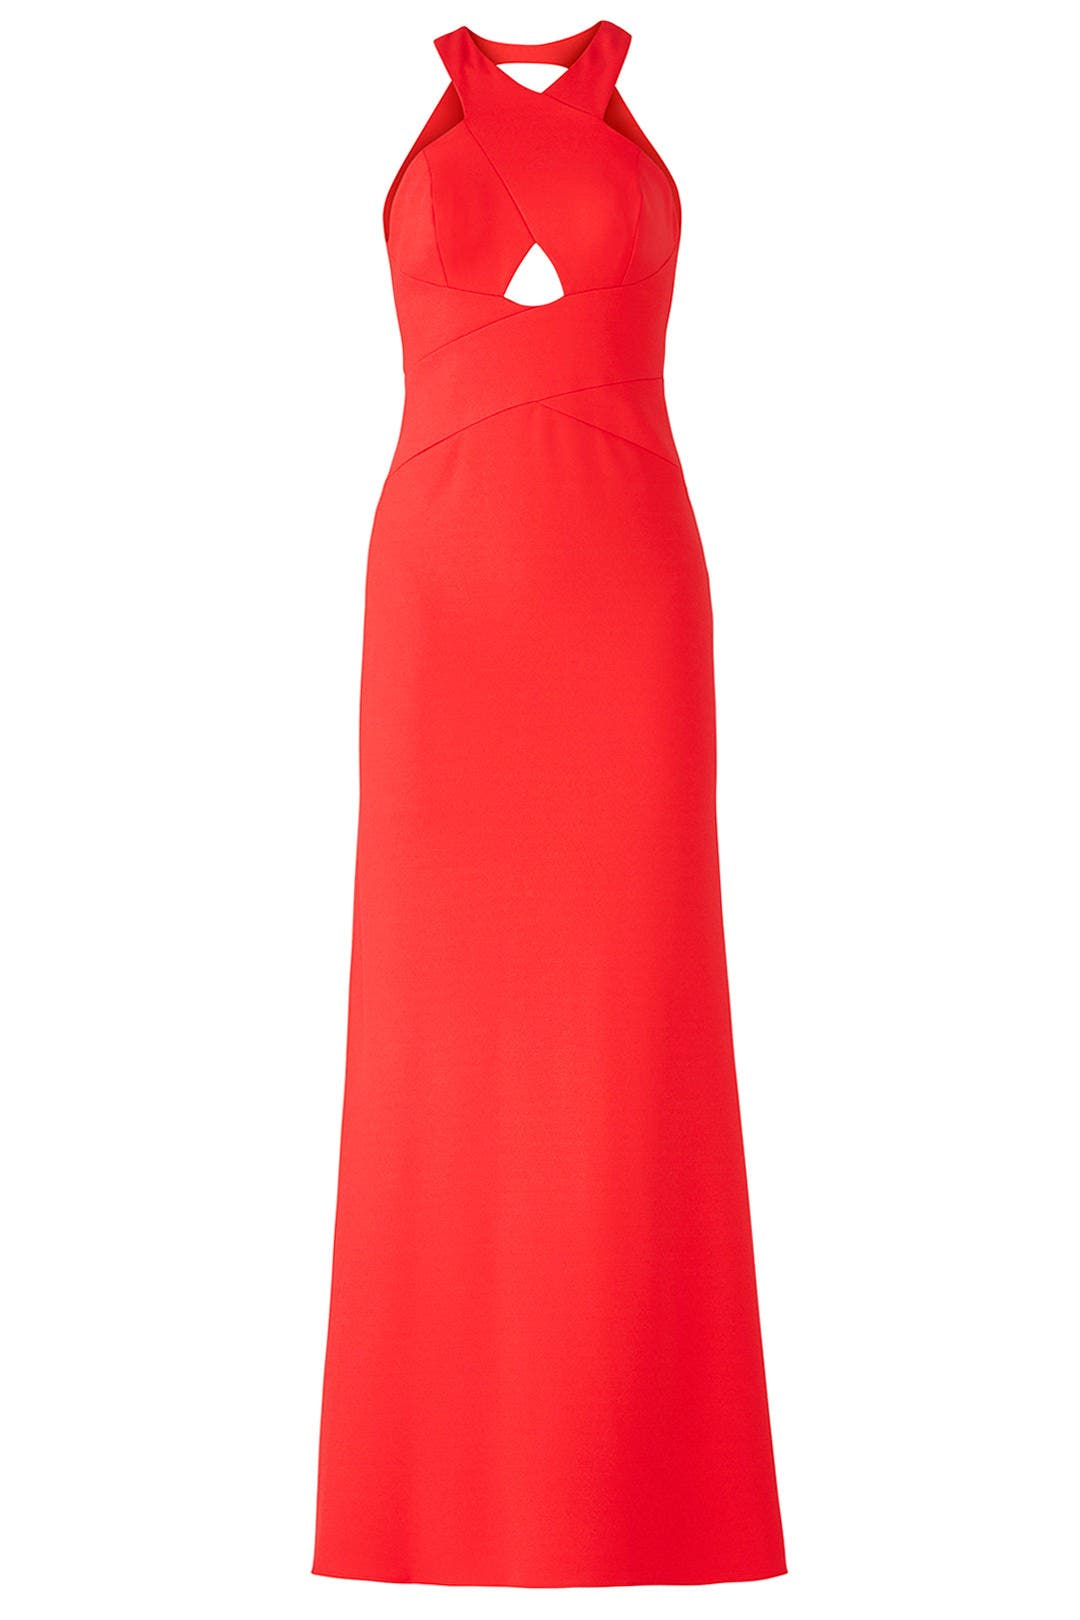 Red Cutout Halter Gown by Aidan Mattox for $40 - $60 | Rent the Runway